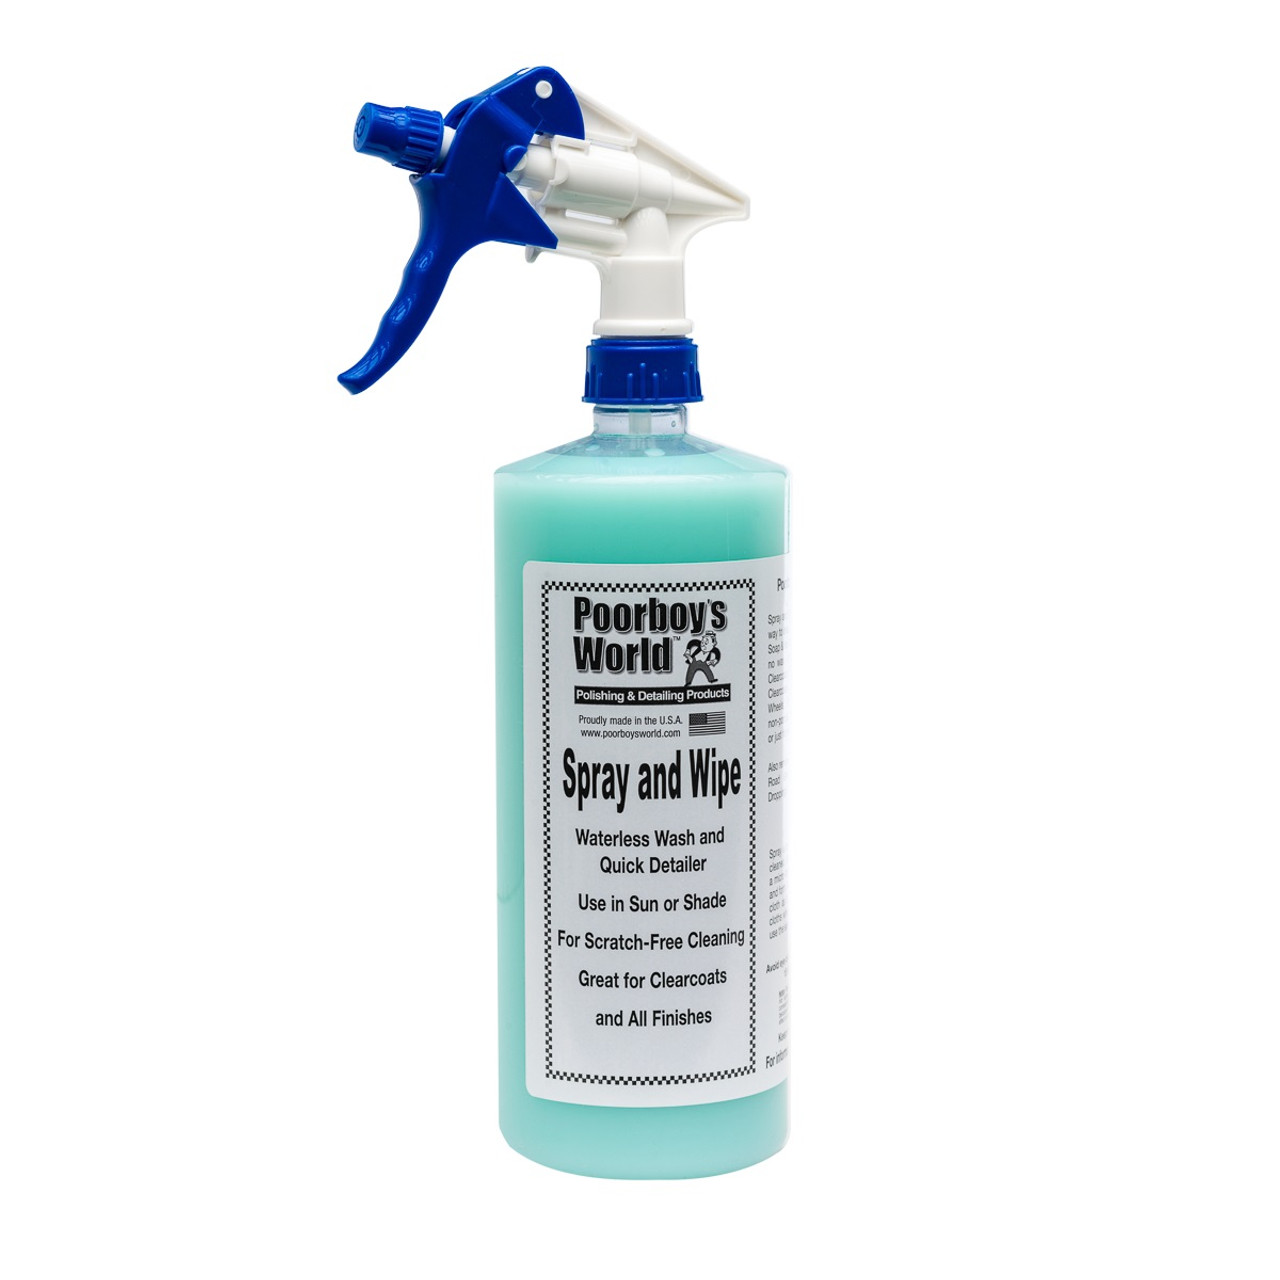 Poorboy's World Spray and Wipe 32oz w/Sprayer